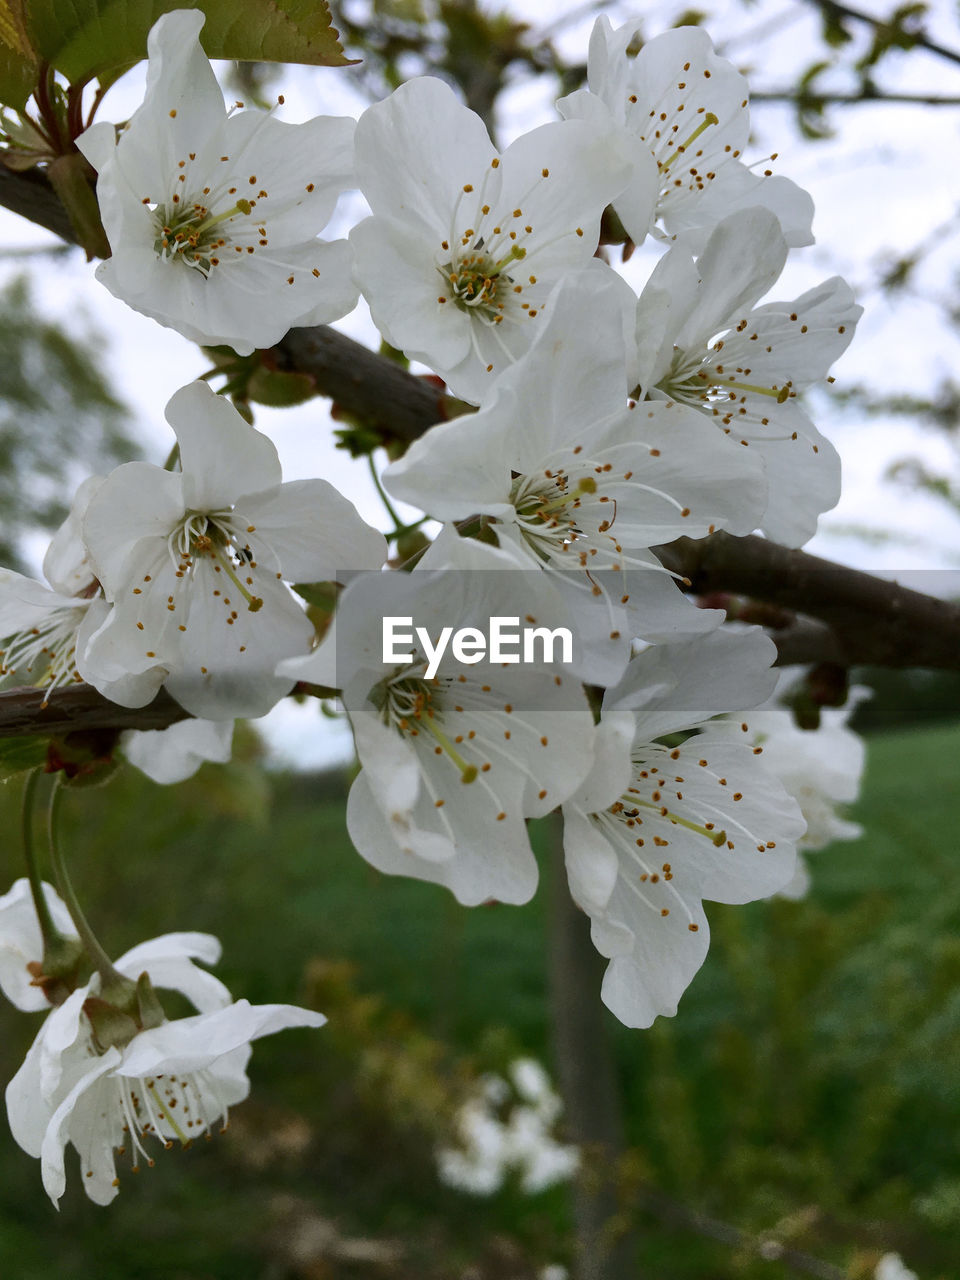 flower, white color, fragility, blossom, beauty in nature, springtime, freshness, tree, growth, nature, apple blossom, petal, apple tree, botany, branch, stamen, orchard, no people, twig, close-up, flower head, pollen, day, plum blossom, focus on foreground, outdoors, blooming